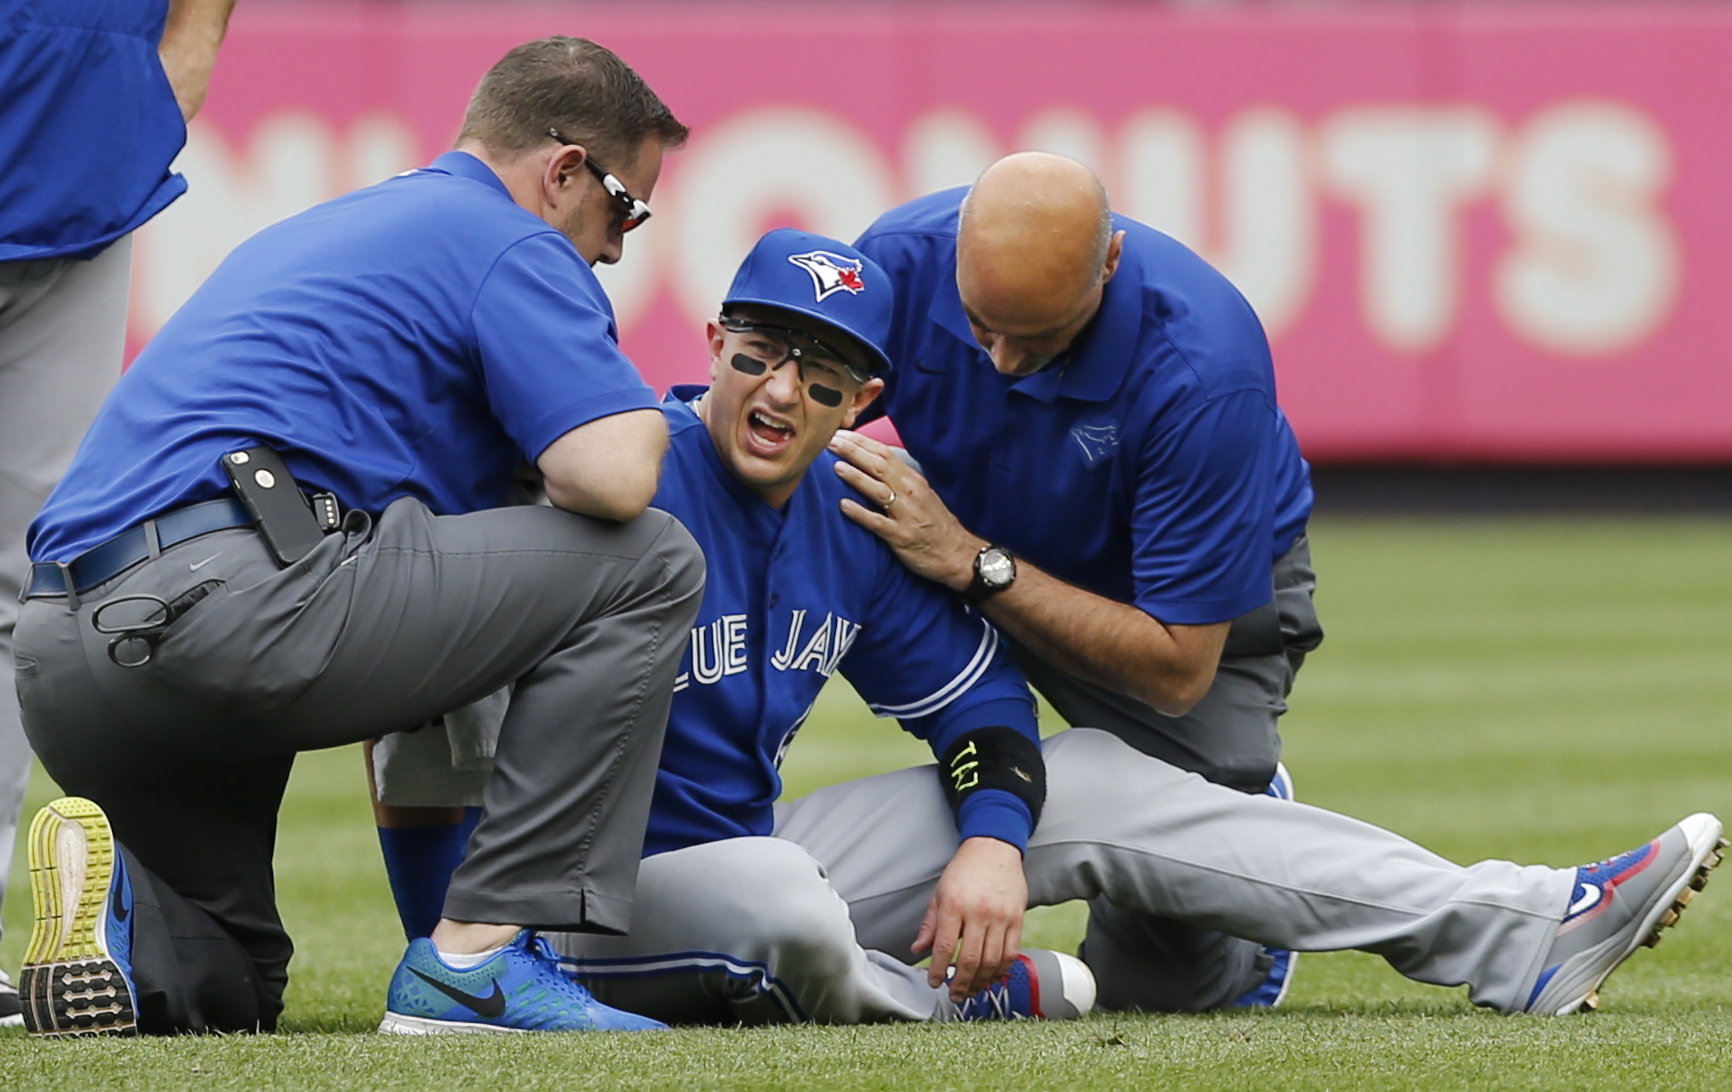 Toronto Blue Jays staff tend to Toronto Blue Jays shortstop Troy Tulowitzki, center, after he collided with Blue Jays center fielder Kevin Pillar fielding a fly ball in the second inning of a baseball game at Yankee Stadium in New York, Saturday, Sept. 12